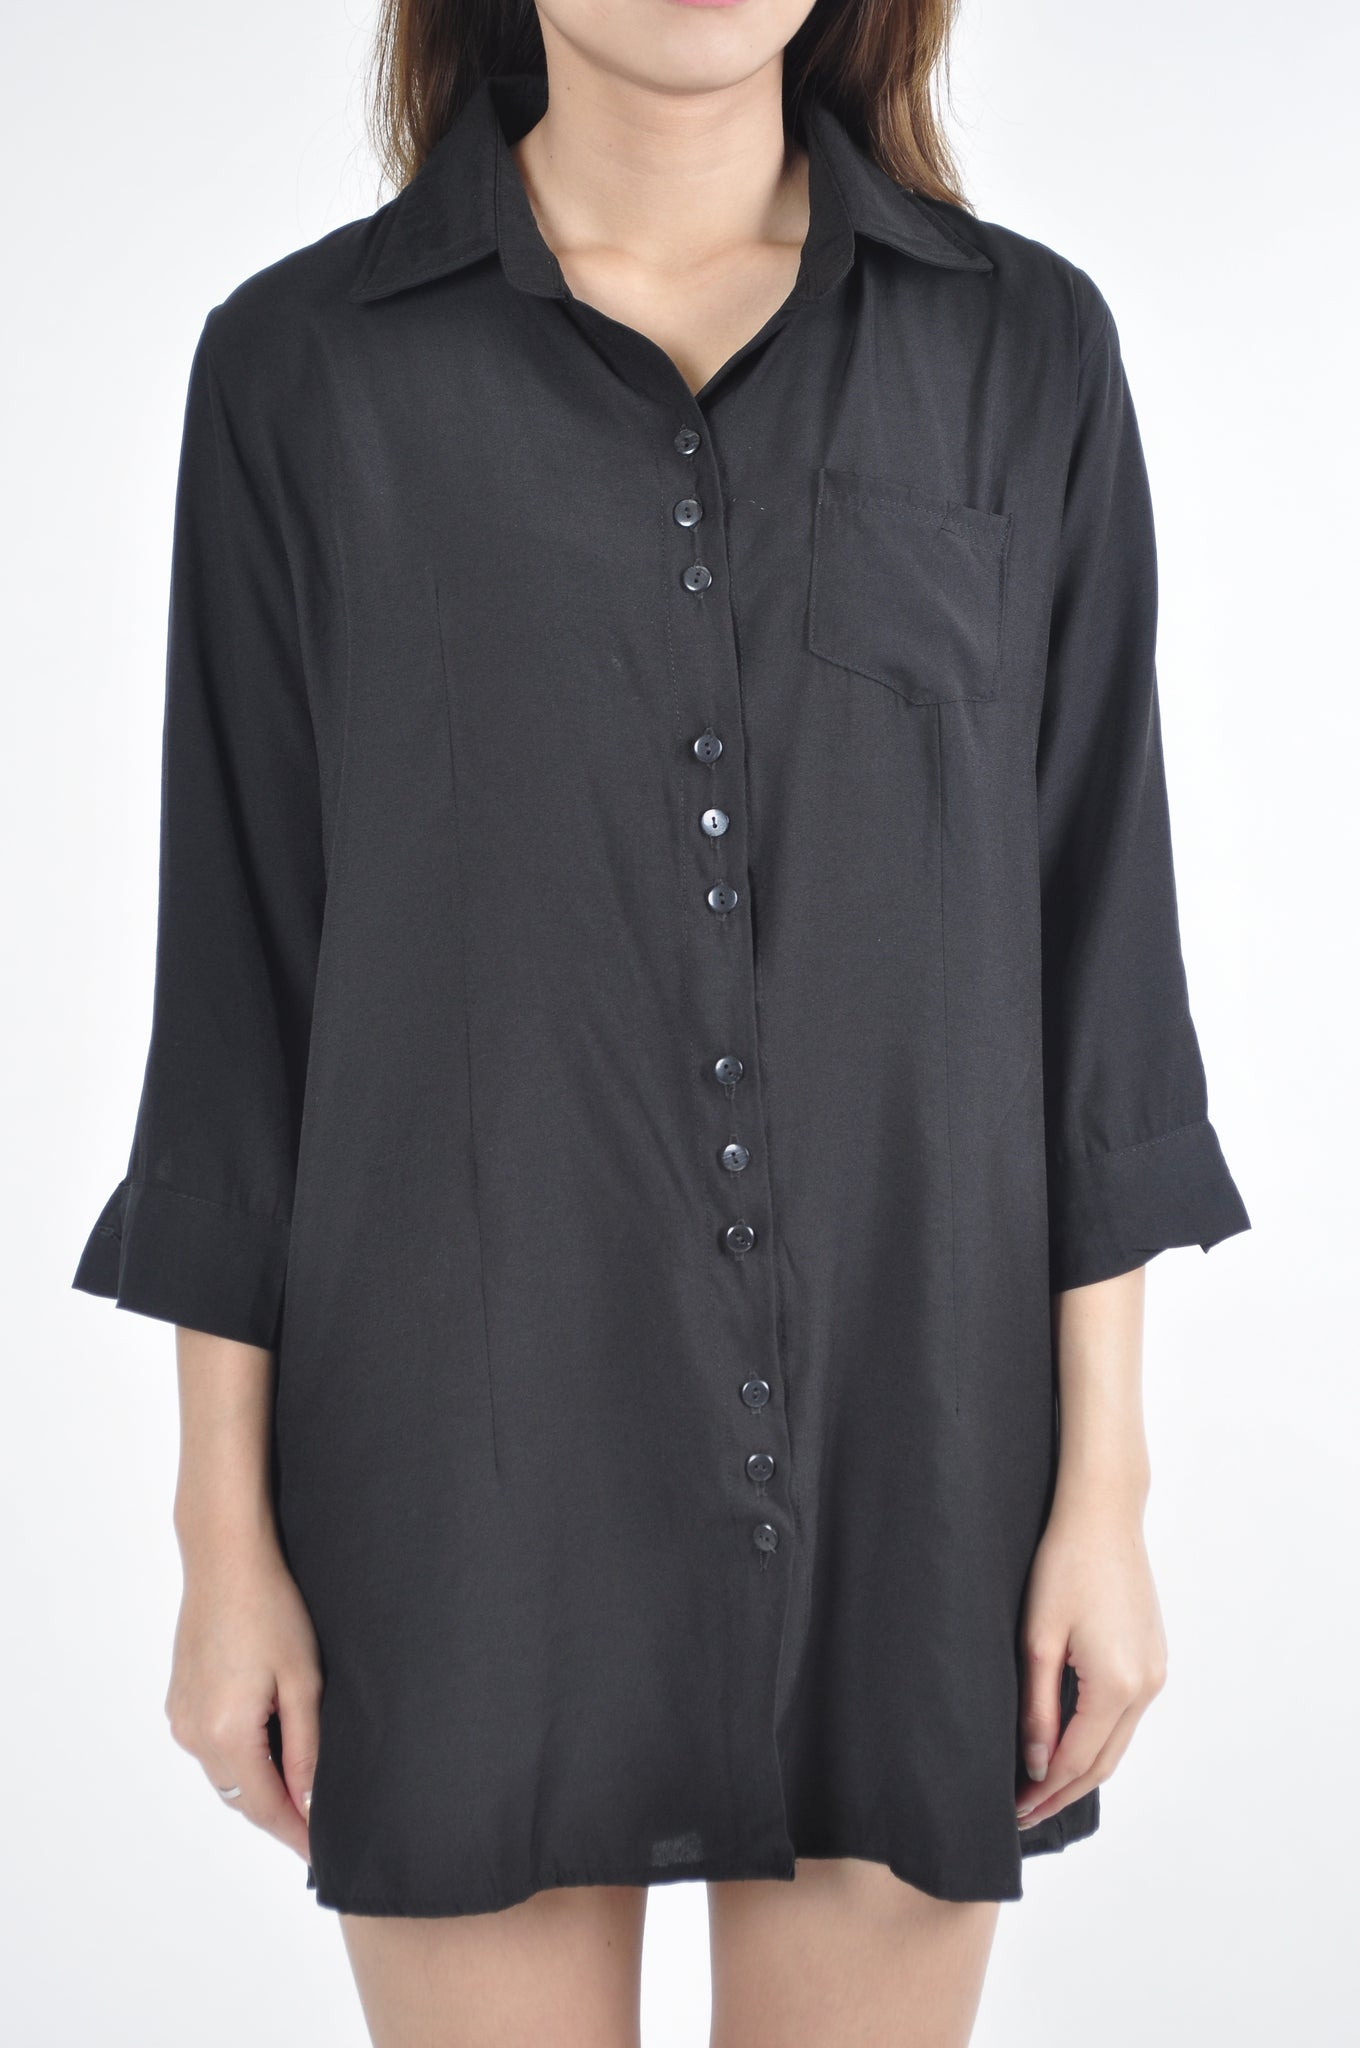 Trio Button Pocket Collared Quarter Sleeve Shirt Dress in Black